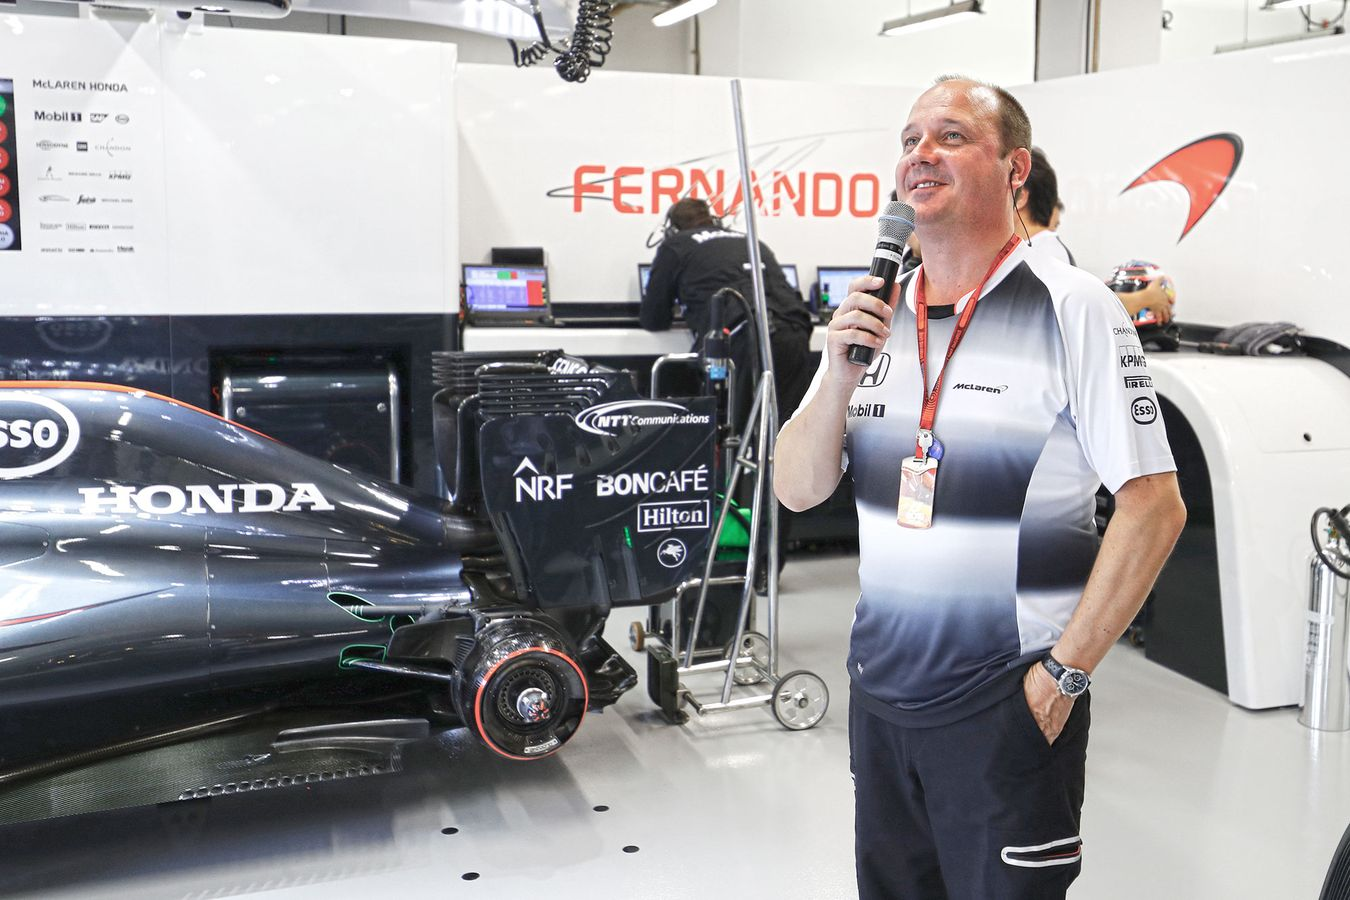 mclaren formula 1 - mclaren snaps: head of partner activation